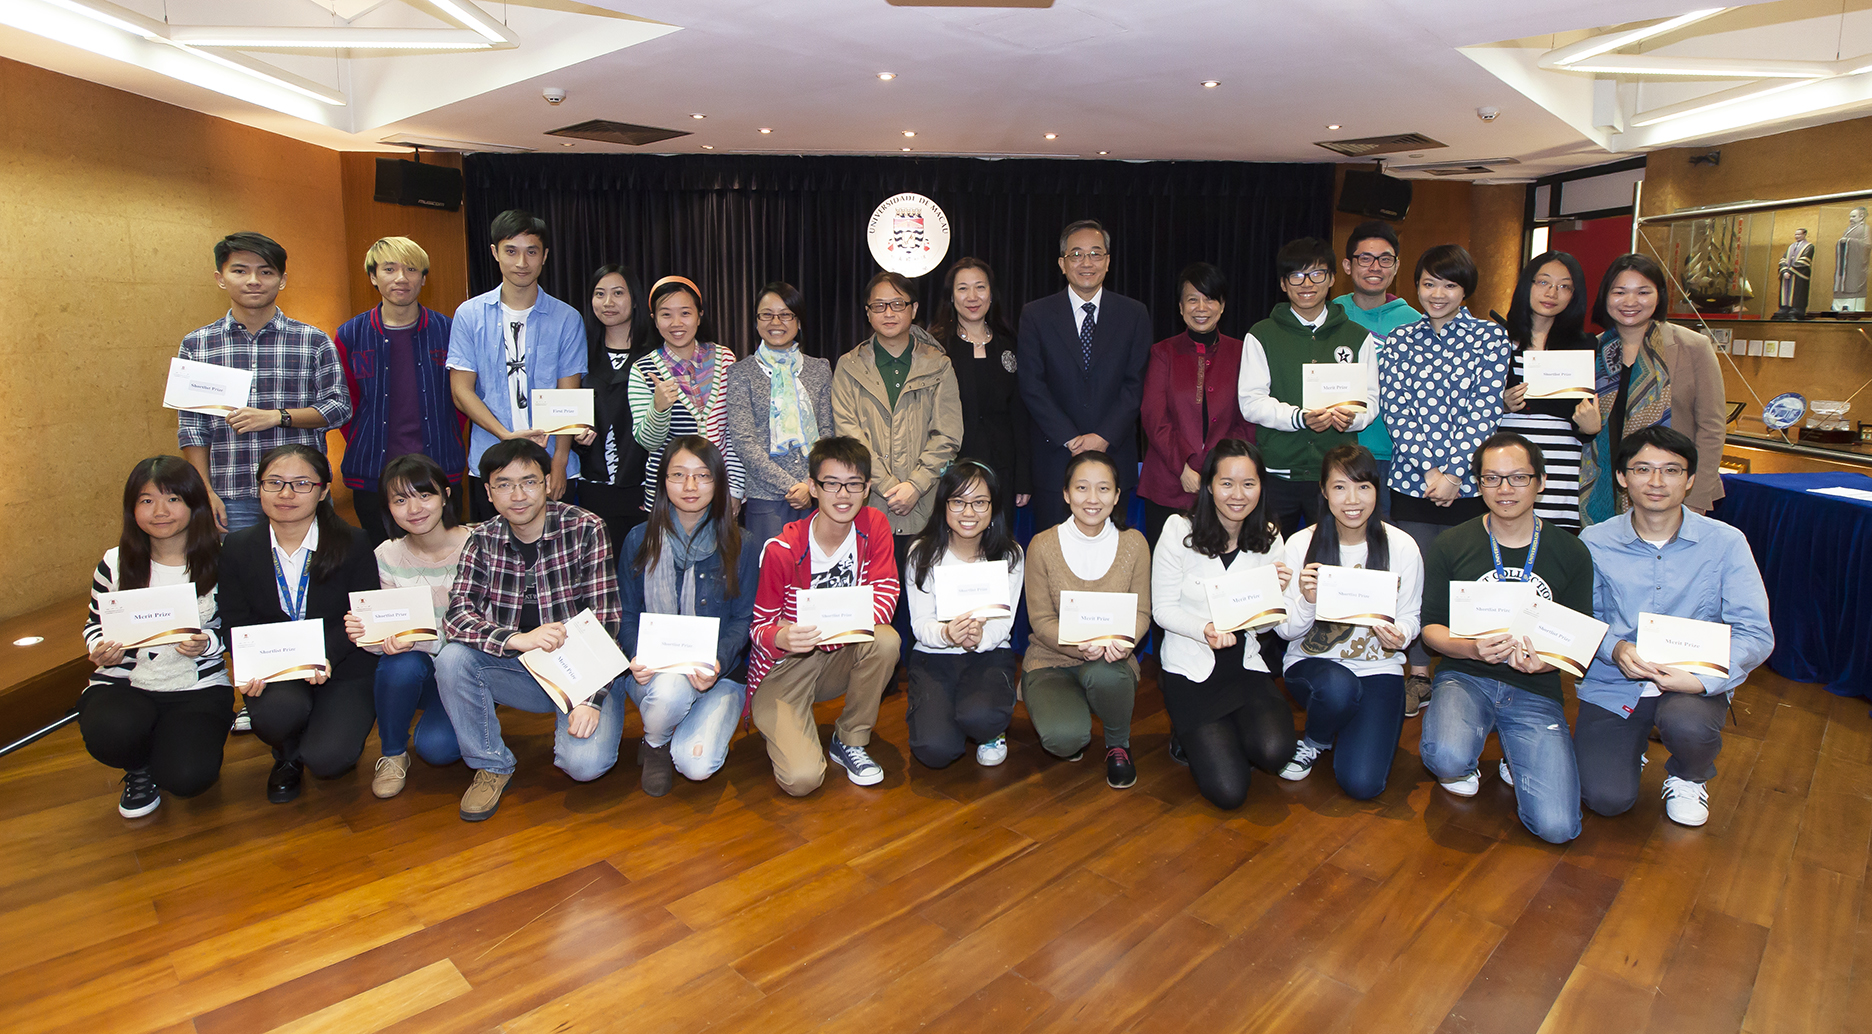 Group photo of the winners and judges